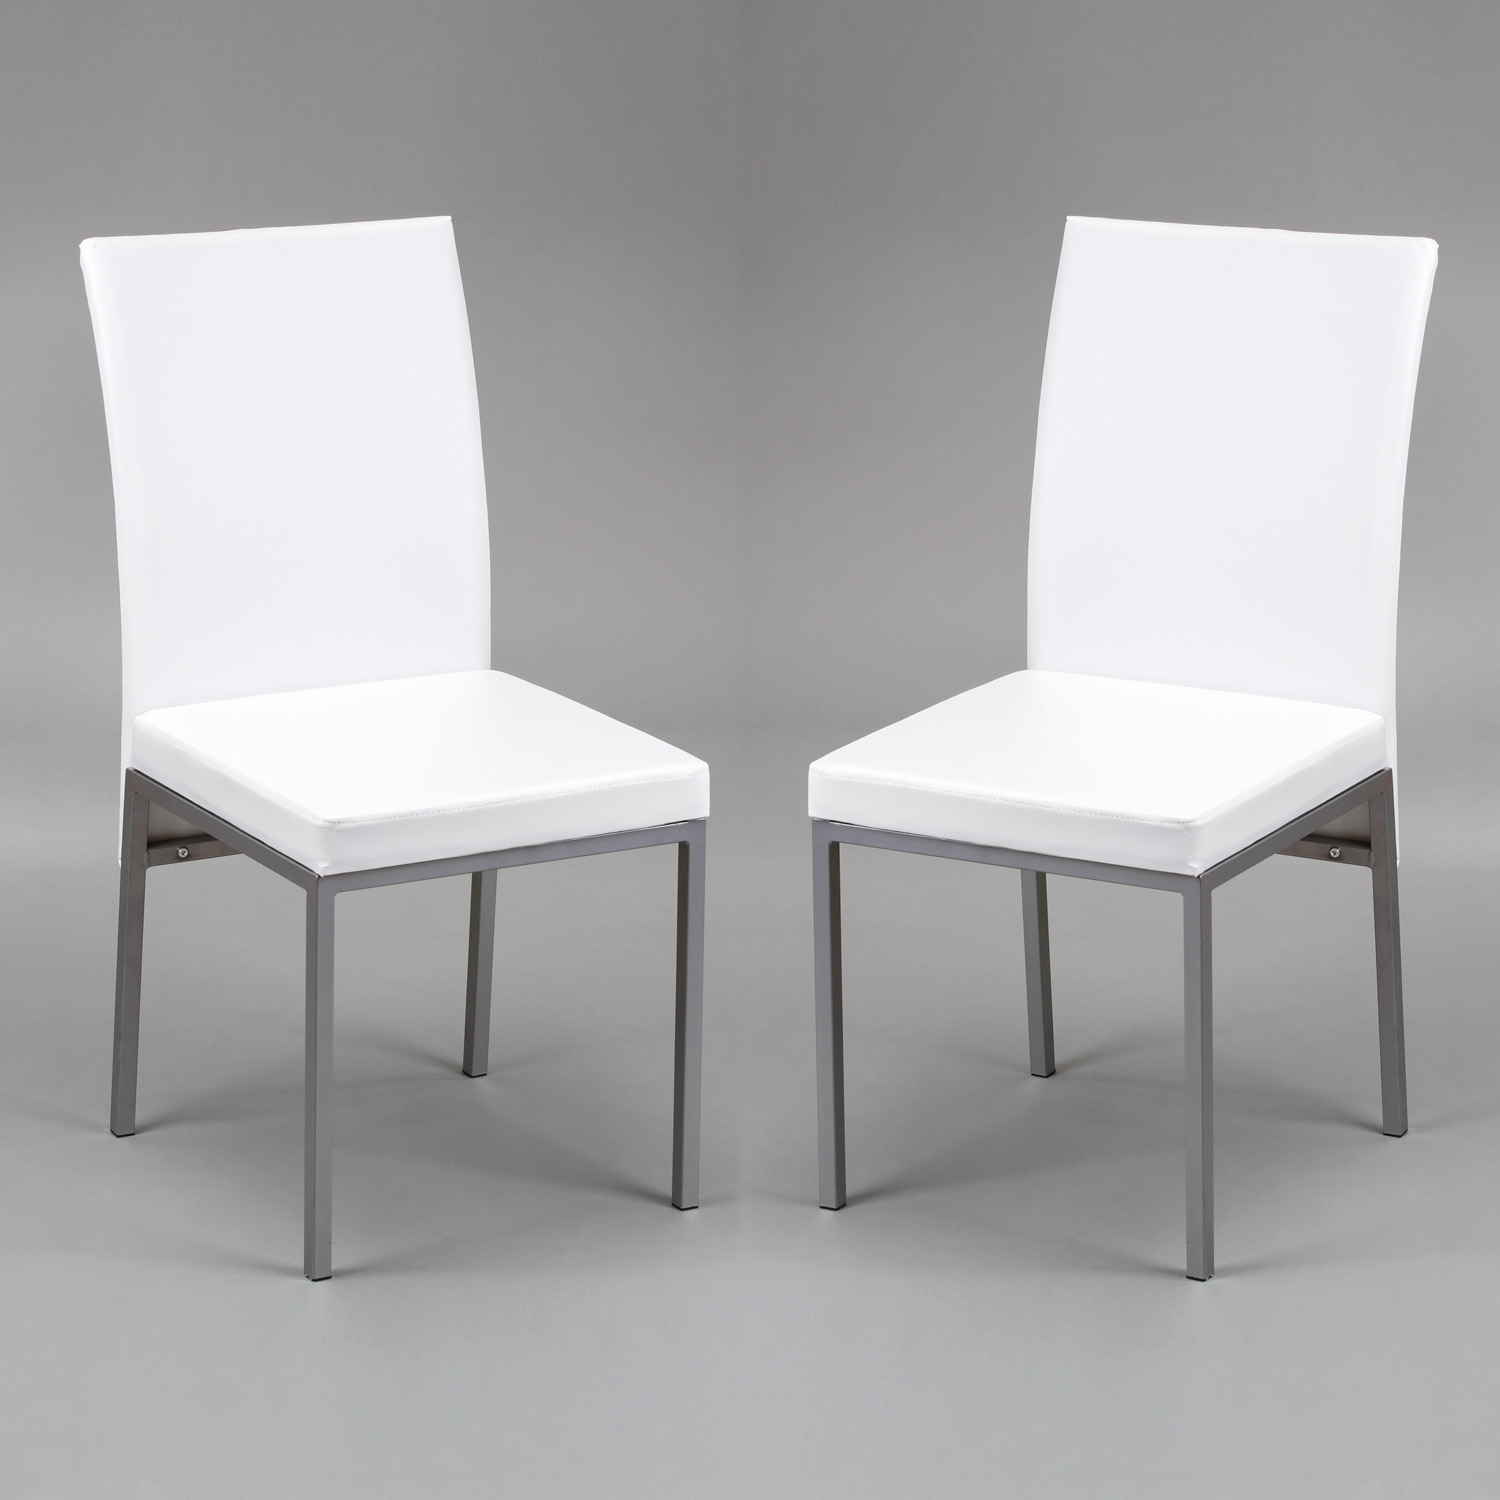 Conjunto mesa 4 sillas lux blanca muebles baratos online for Sillas salon blancas